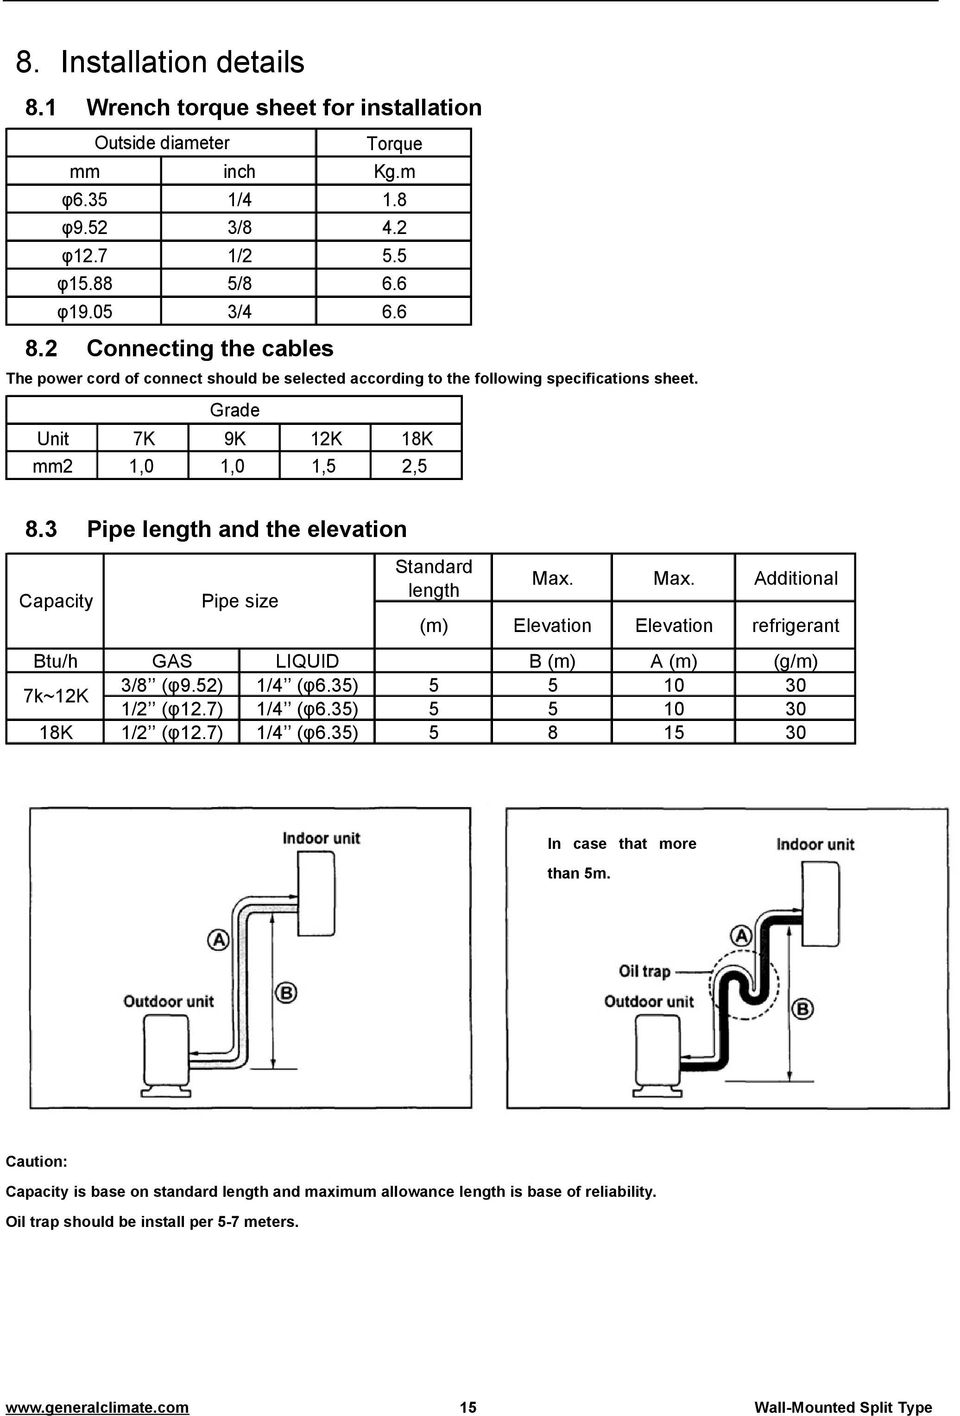 3 Pipe length and the elevation Capacity Pipe size Standard length Max. Max. Additional (m) Elevation Elevation refrigerant Btu/h GAS LIQUID B (m) A (m) (g/m) 3/8 (φ9.52) 1/4 (φ6.